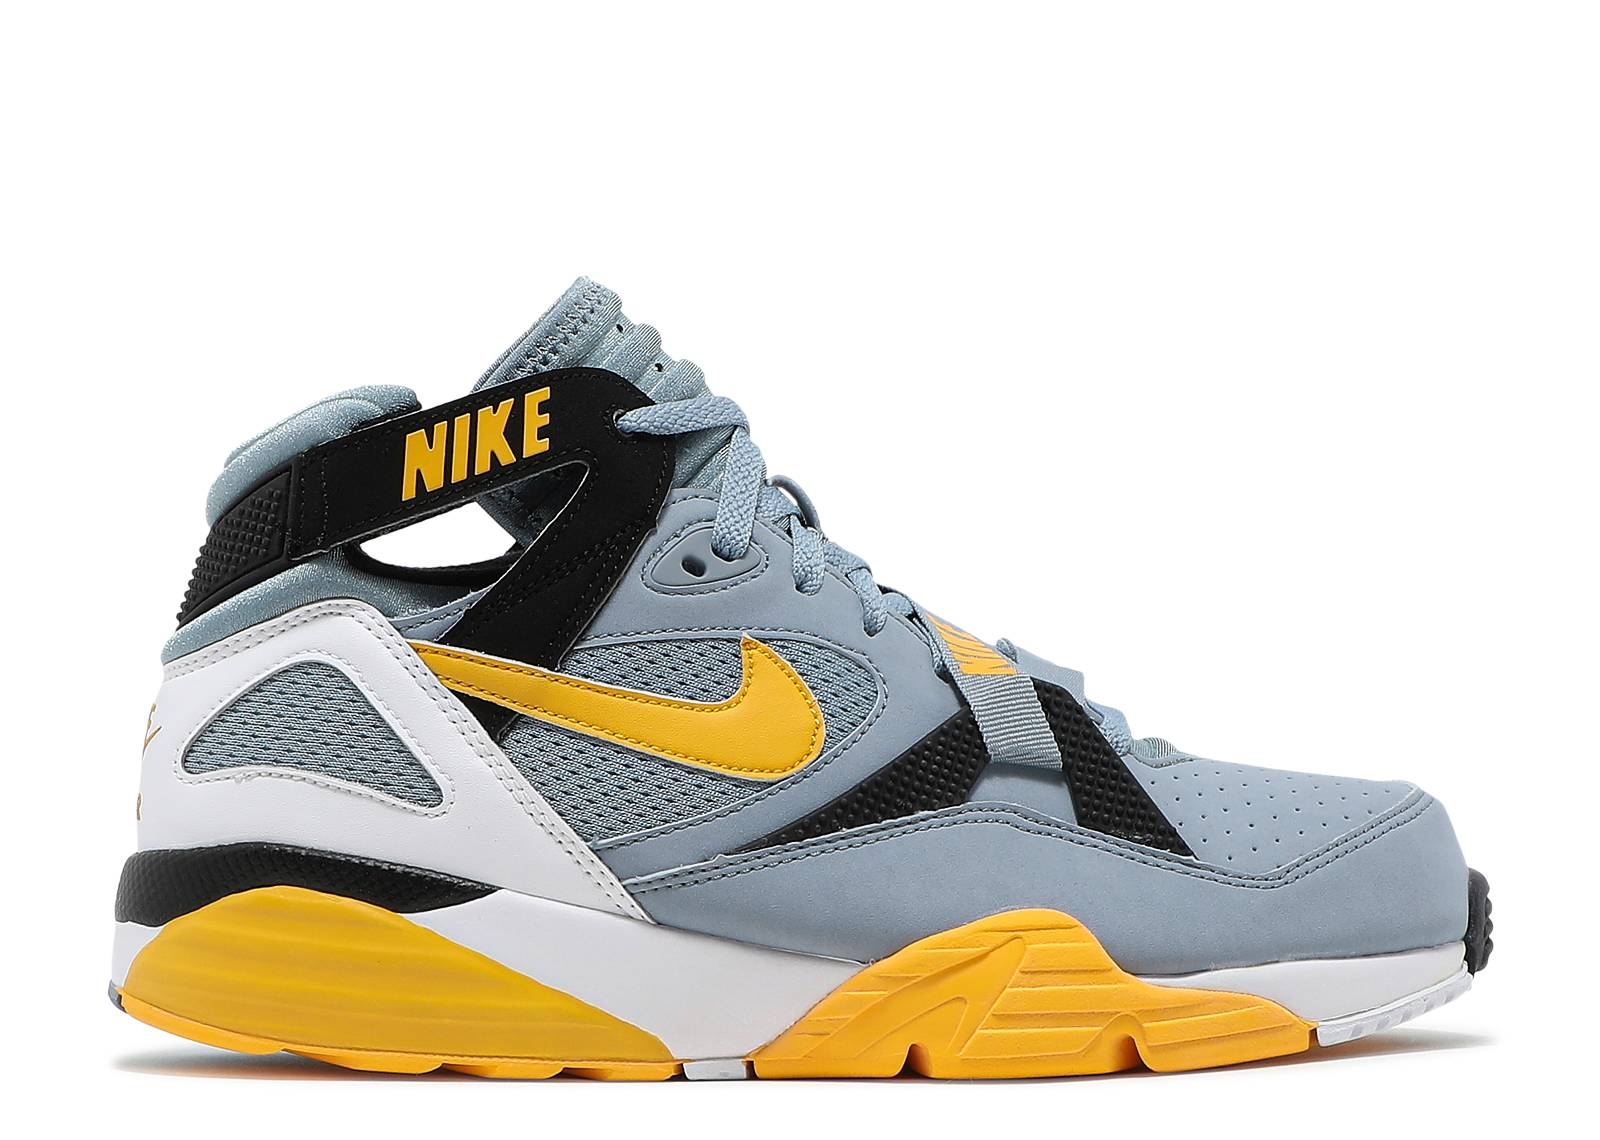 nike air max trainer 91 bo jackson